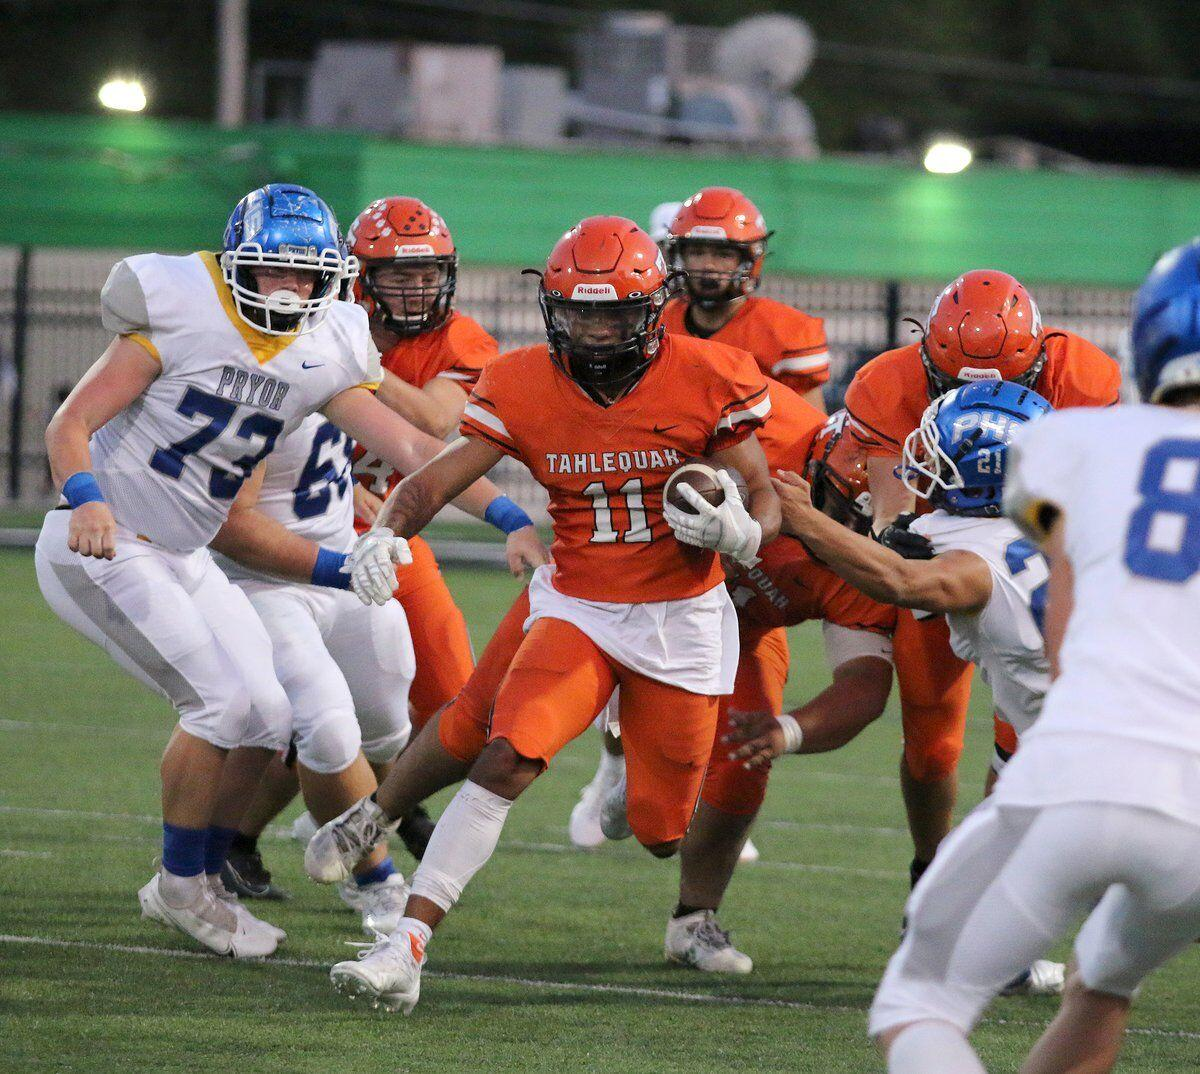 TIGERS FALL: Tahlequah stumbles against Pryor in District 5A-4 opener